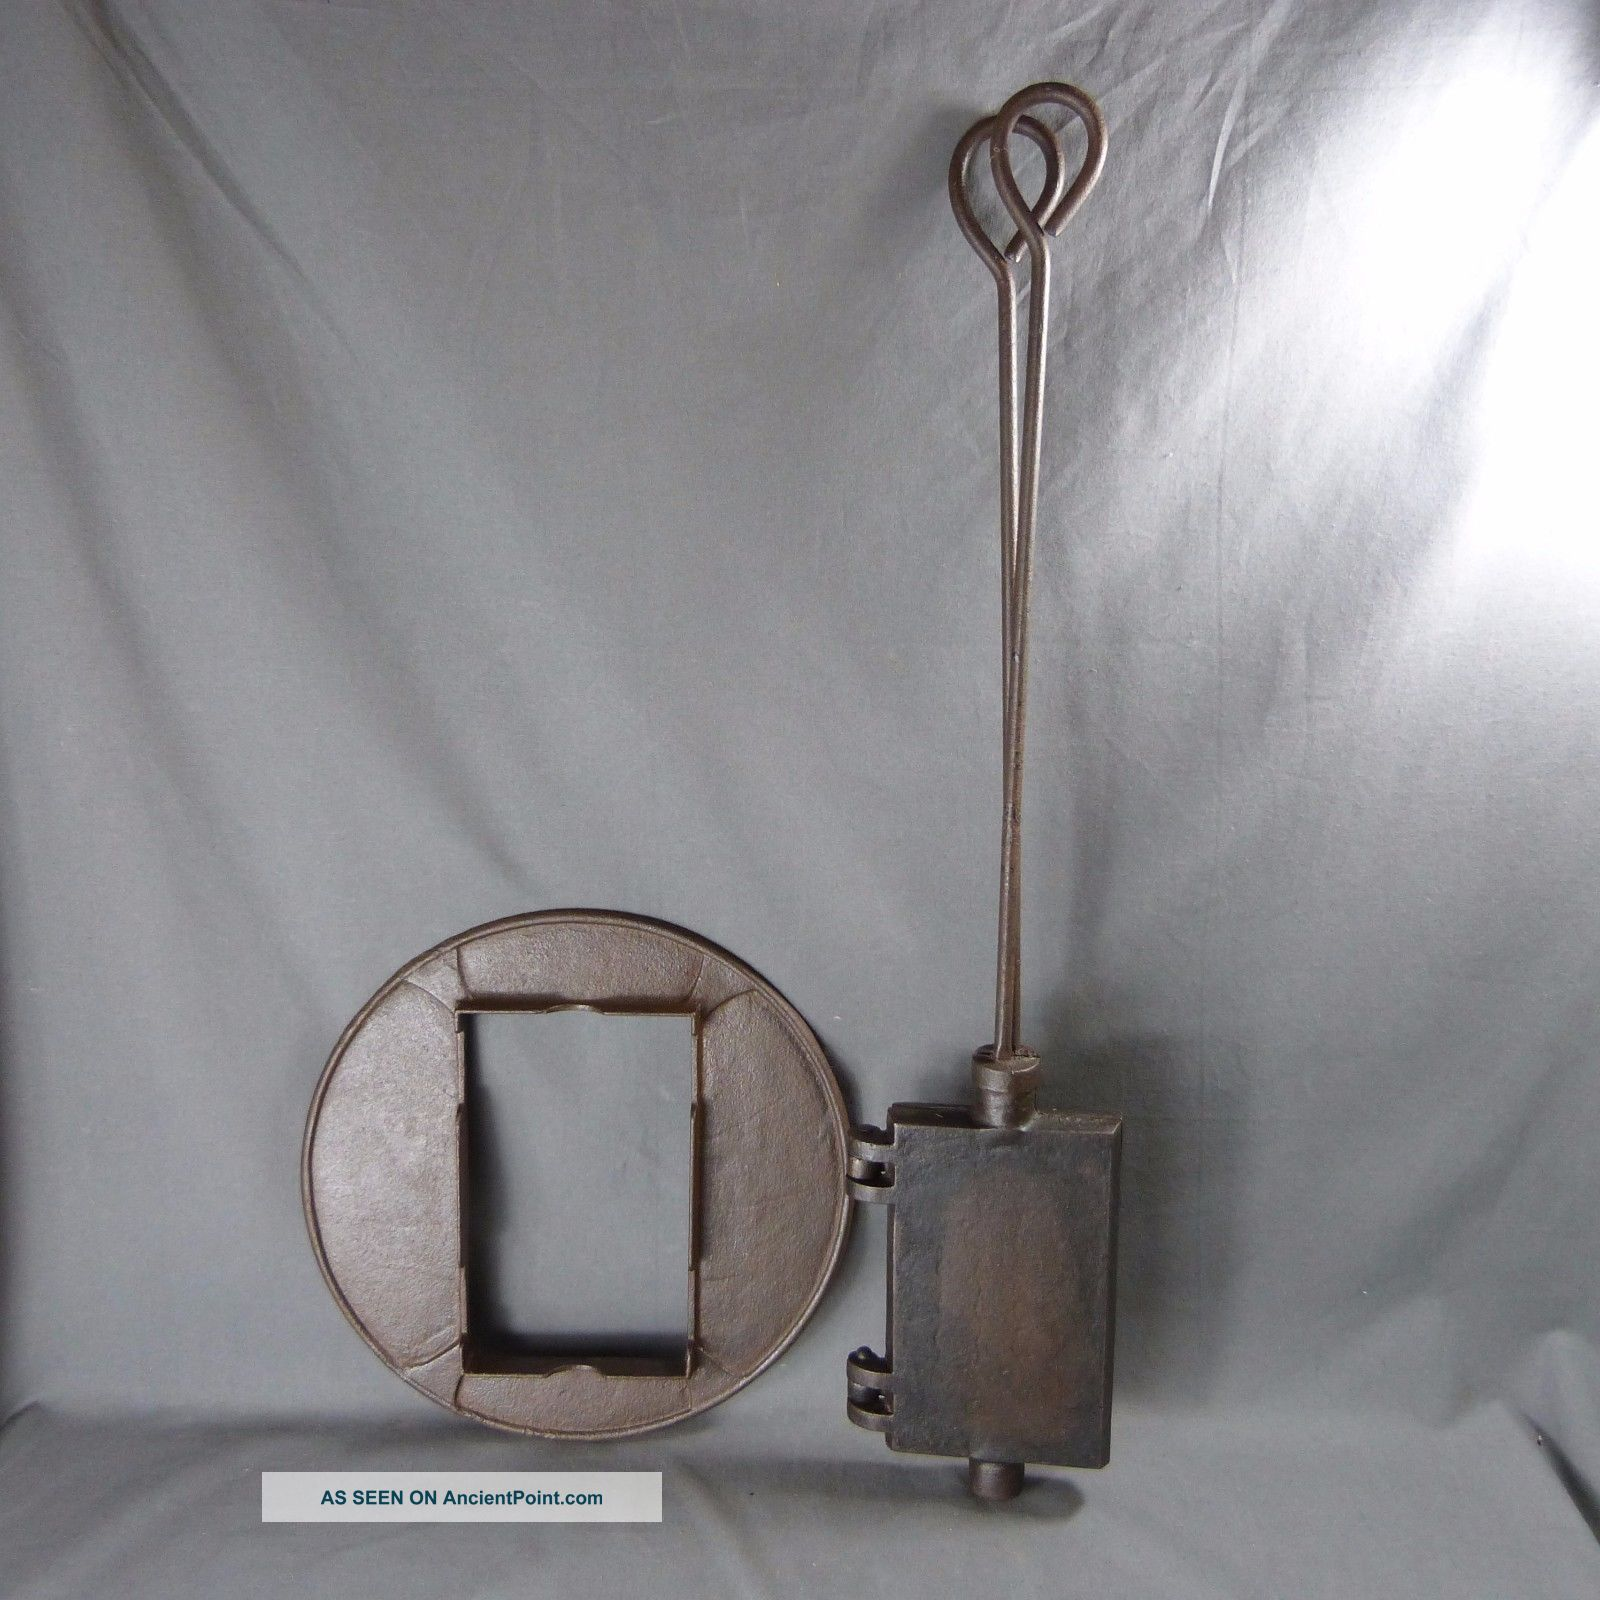 Antique French Cast Iron Waffle Maker Press.  Wrought Iron Pancake - 19th Century Hearth Ware photo